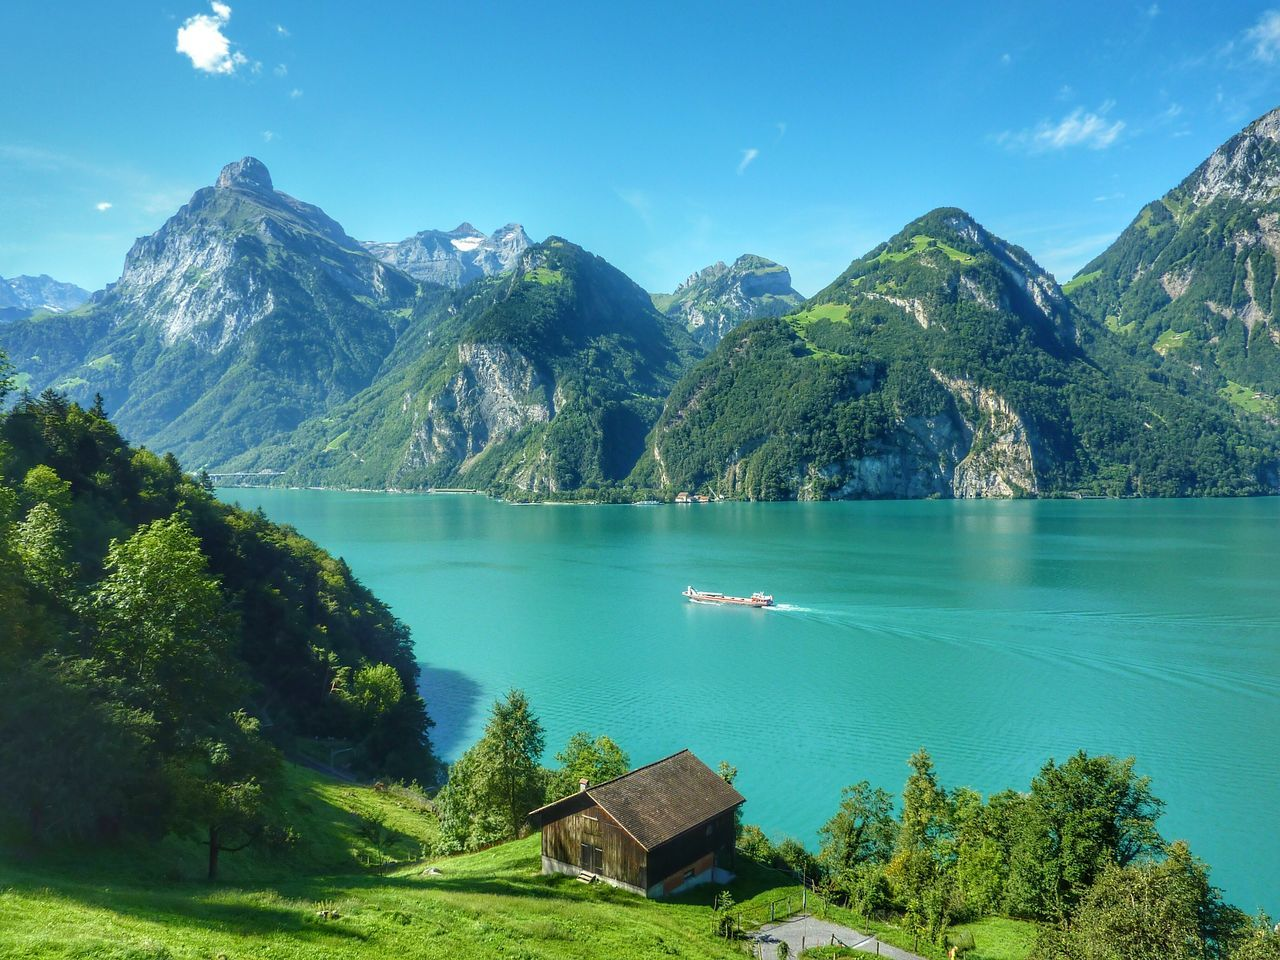 High Angle View Of Lake By Mountains And Blue Sky